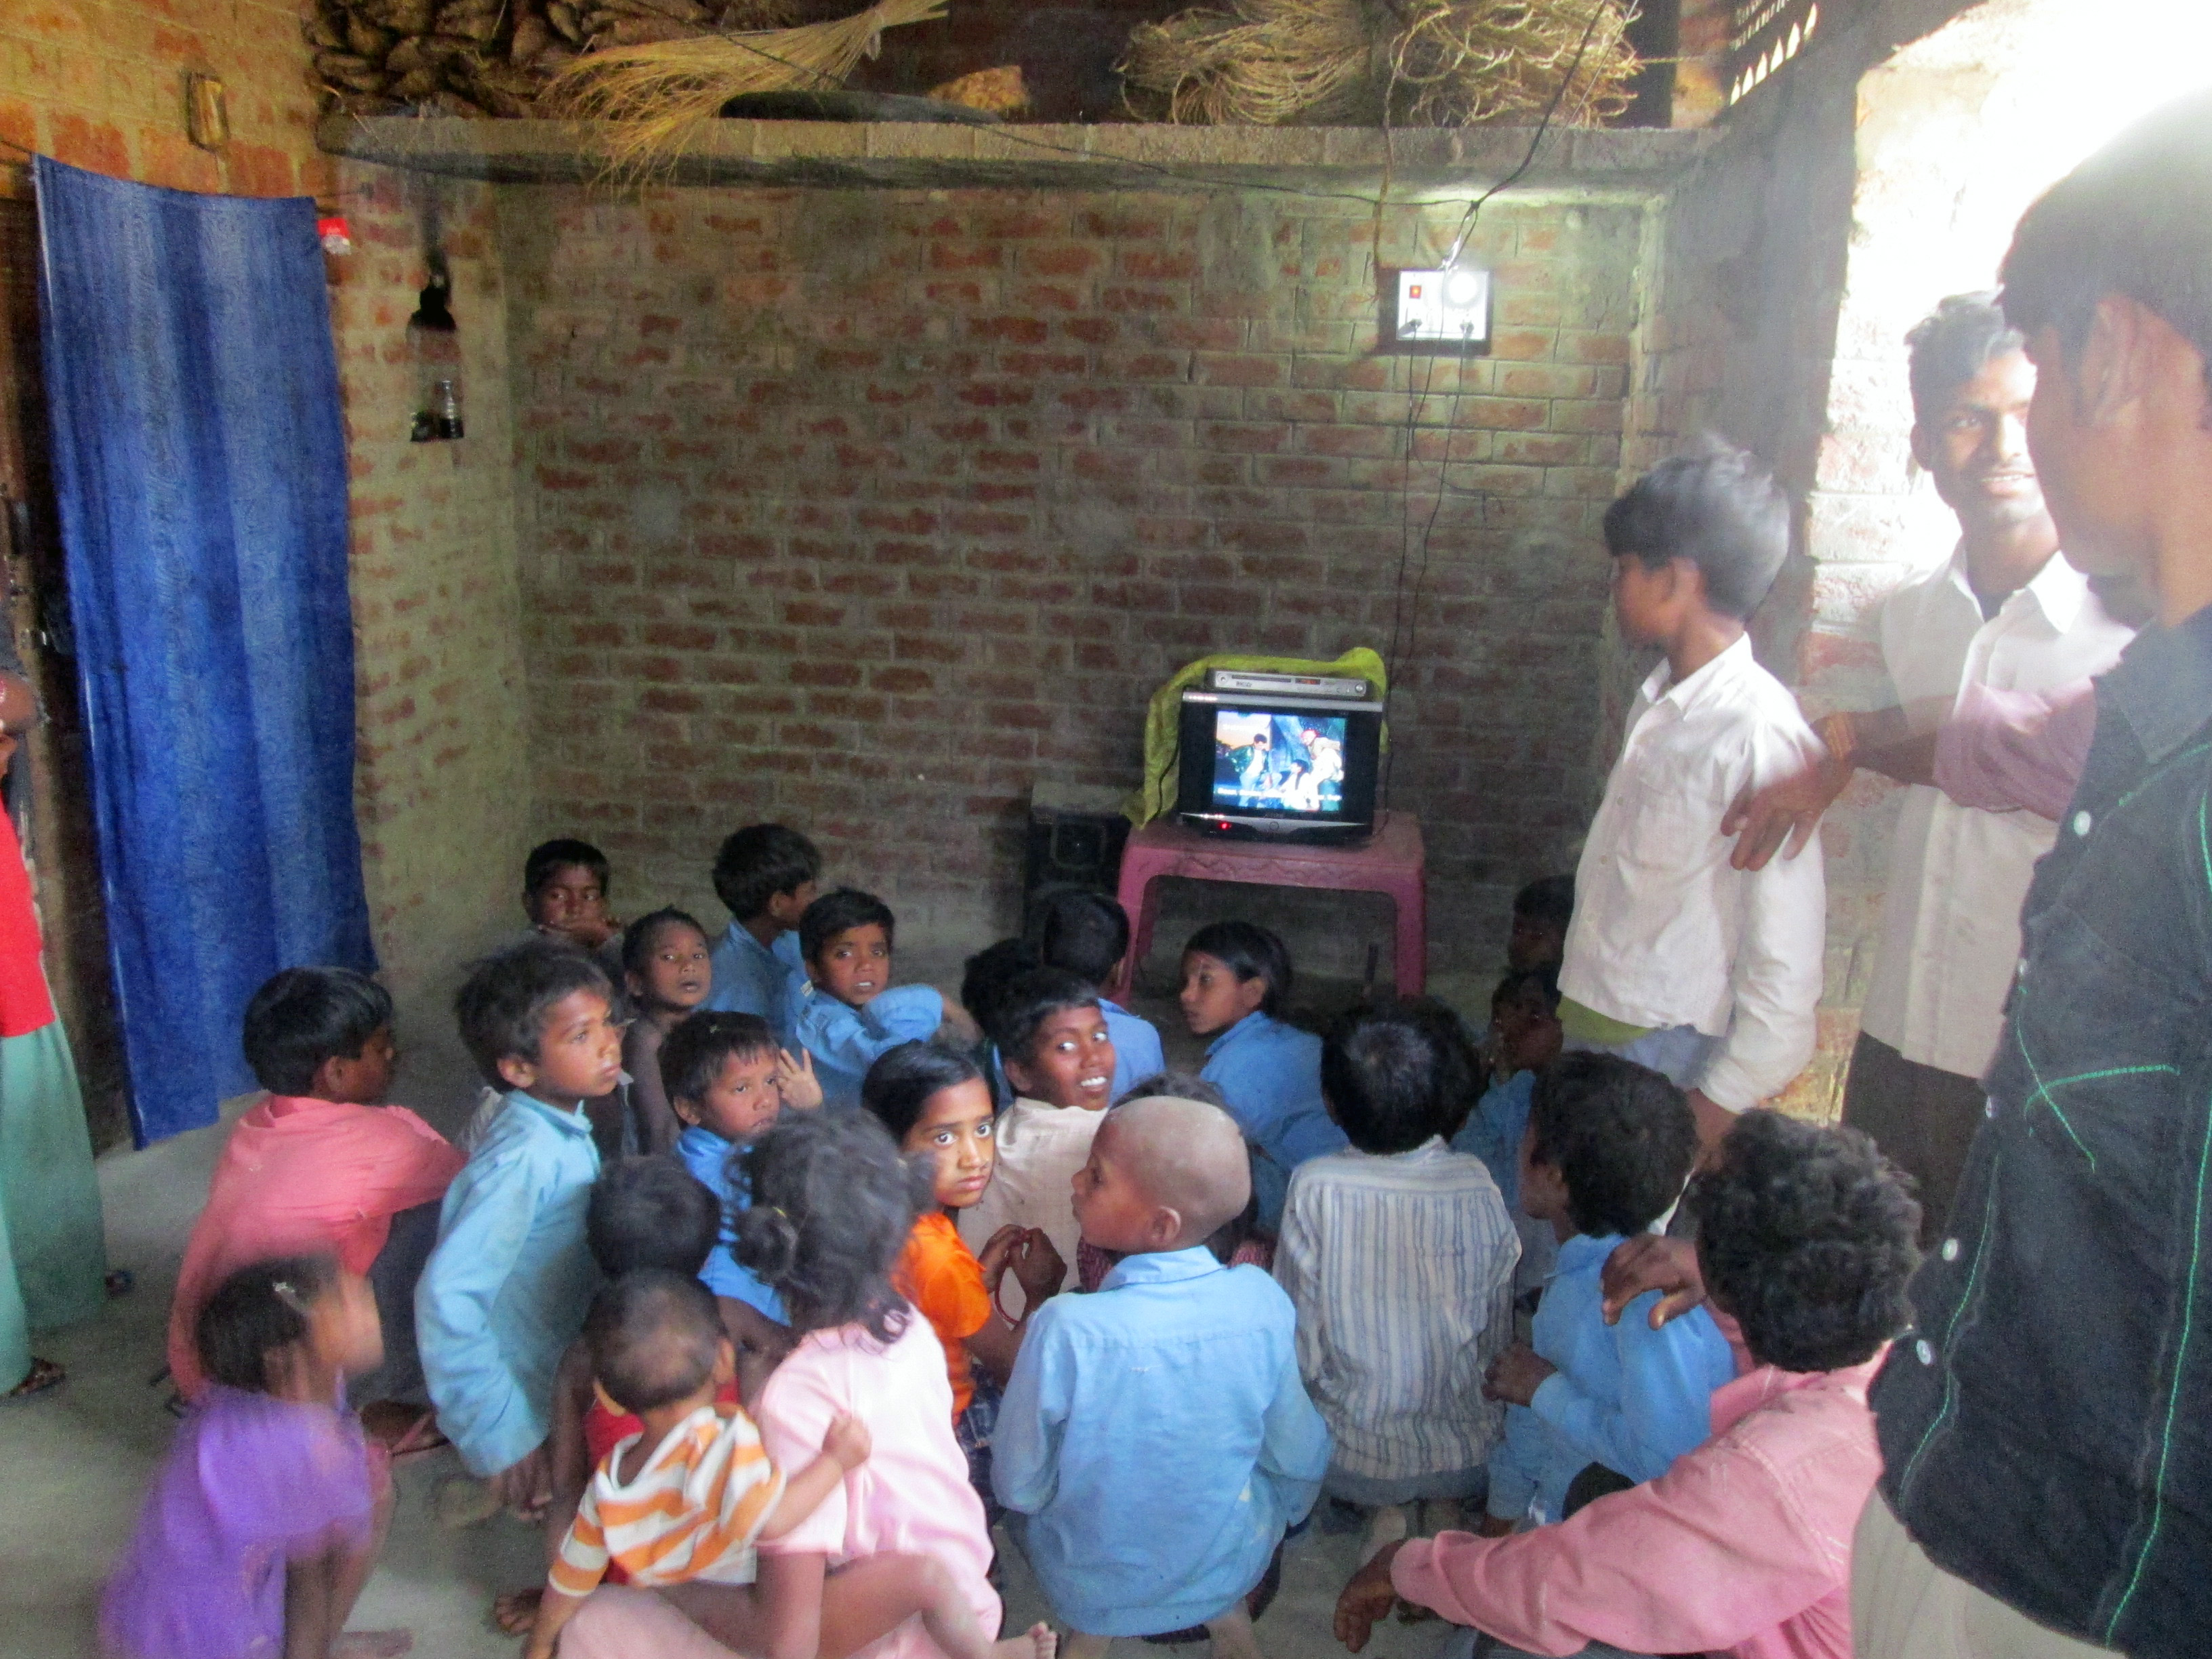 Locals from a village in the Uttar Pradesh state in northern India watch television under the glow of a light bulb, both powered by our new biomass power station.